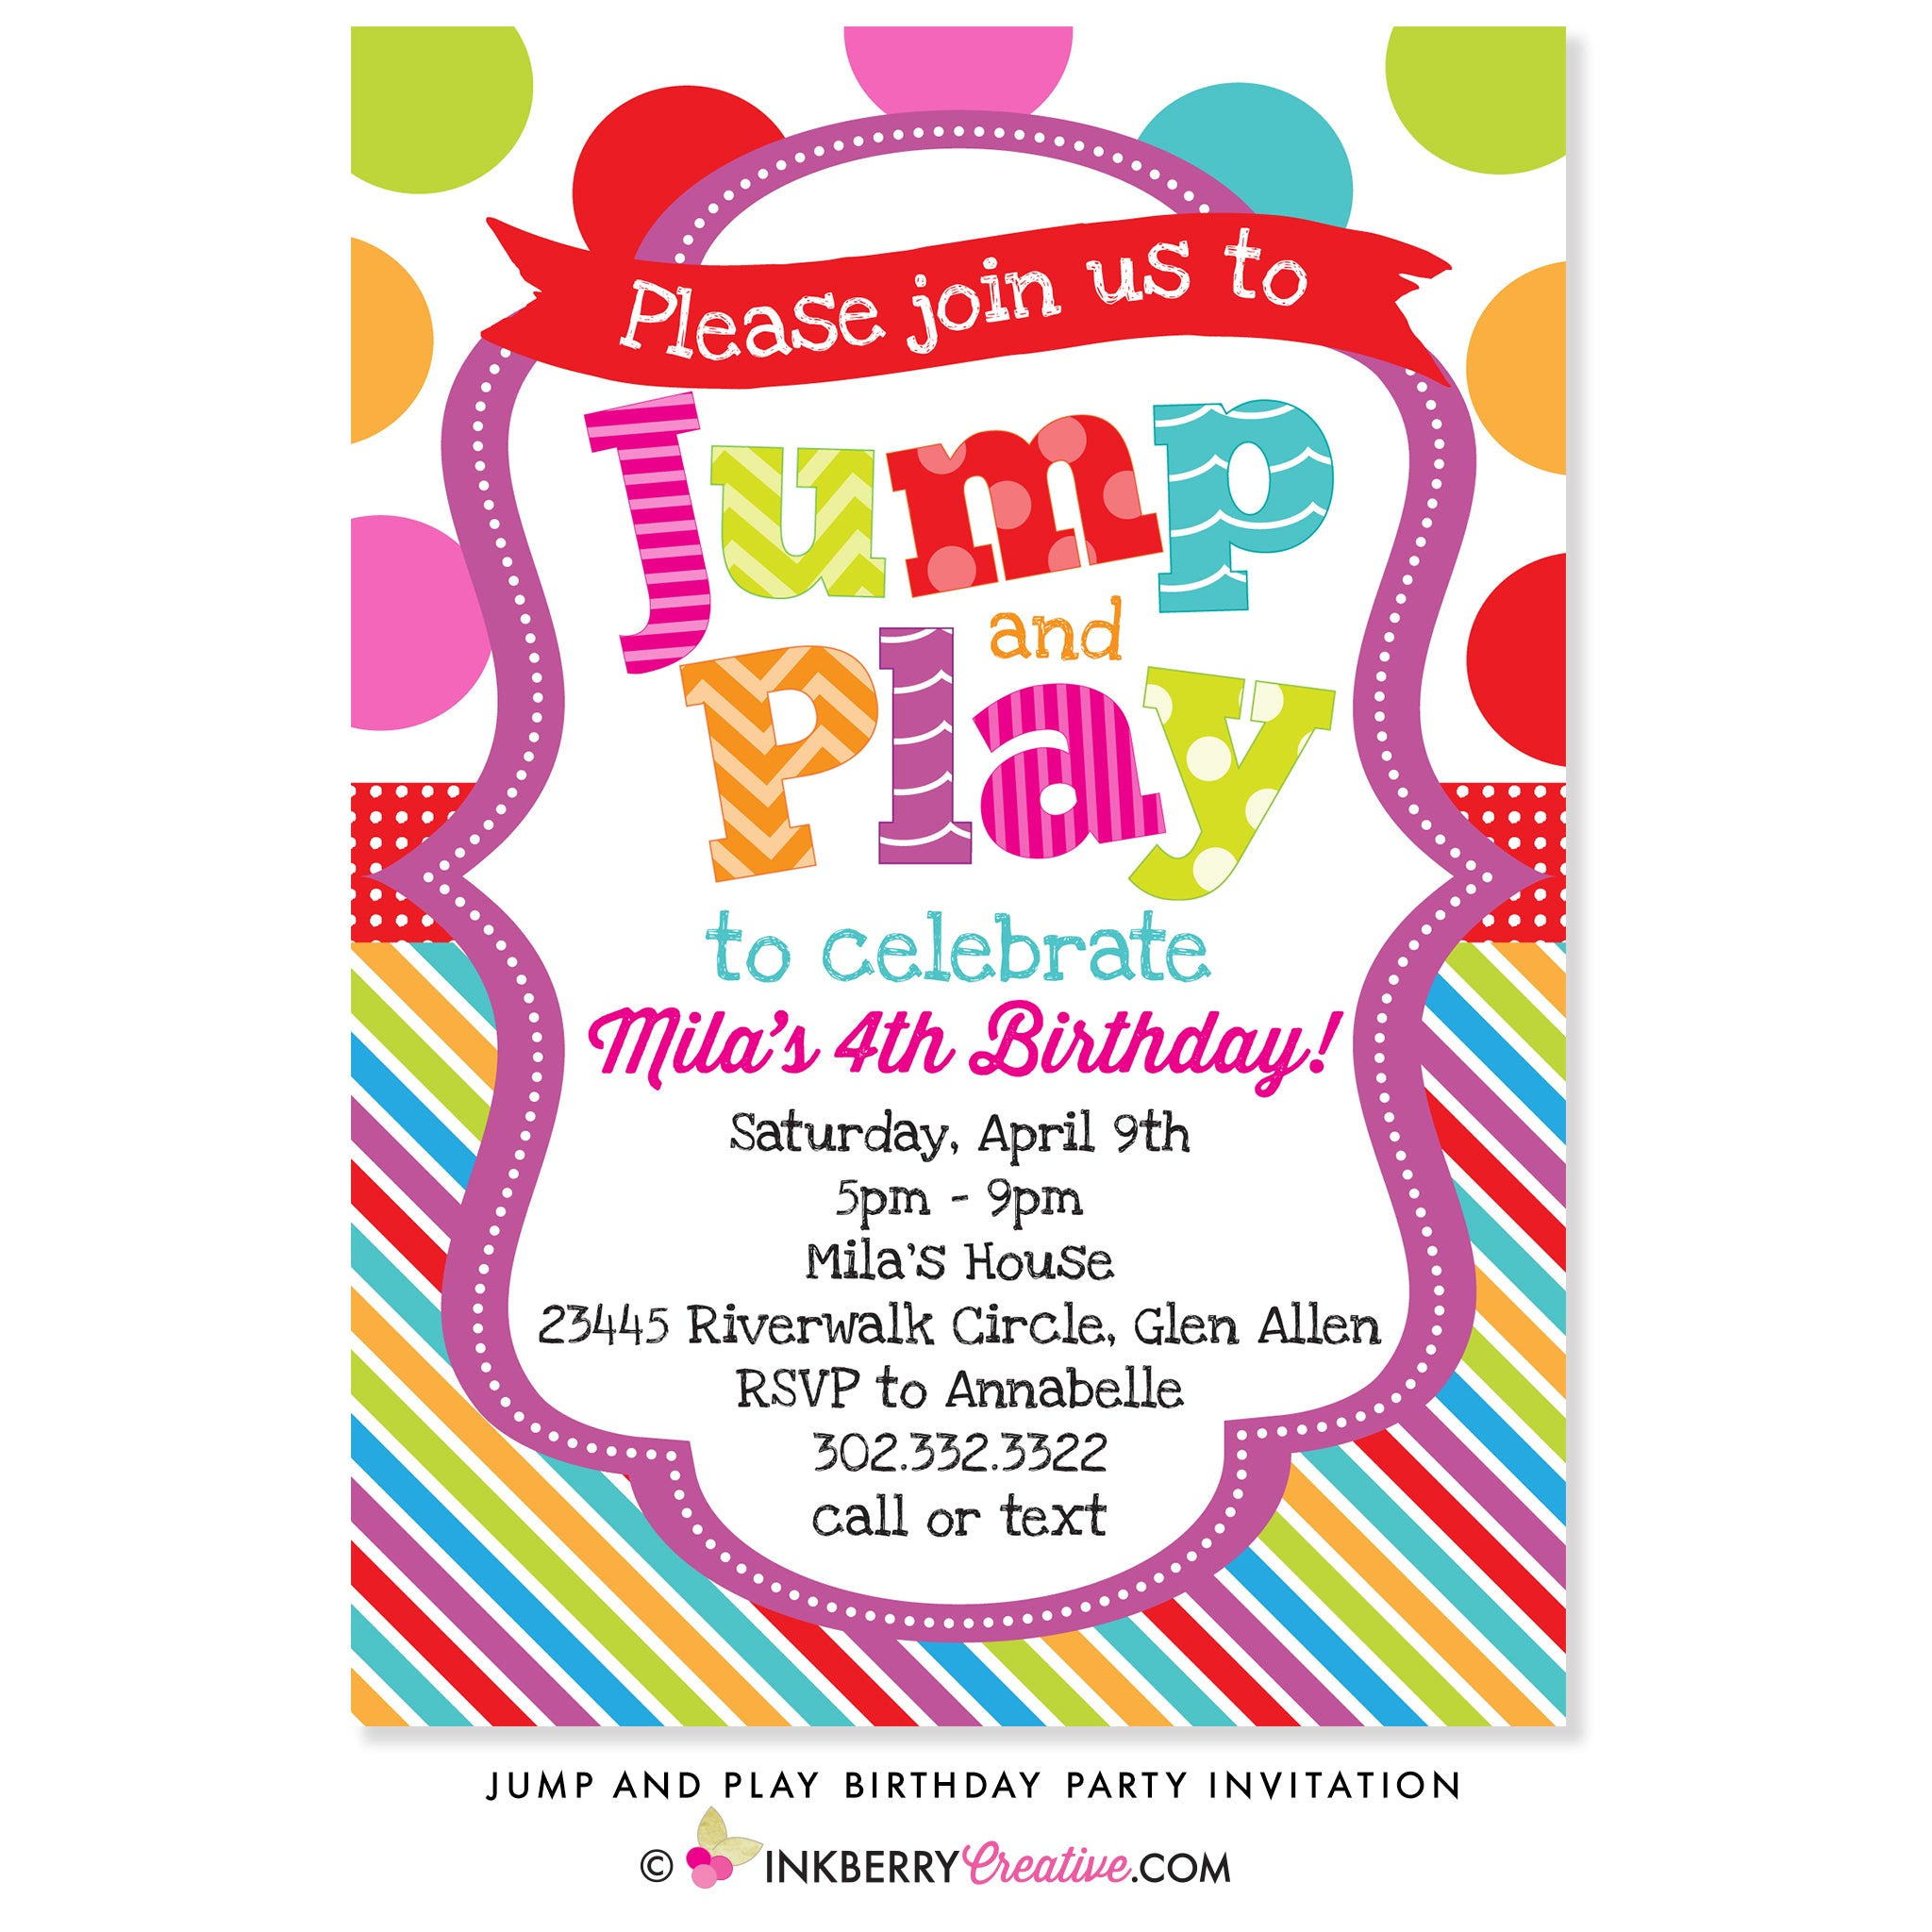 Jump And Play Birthday Party Invitation